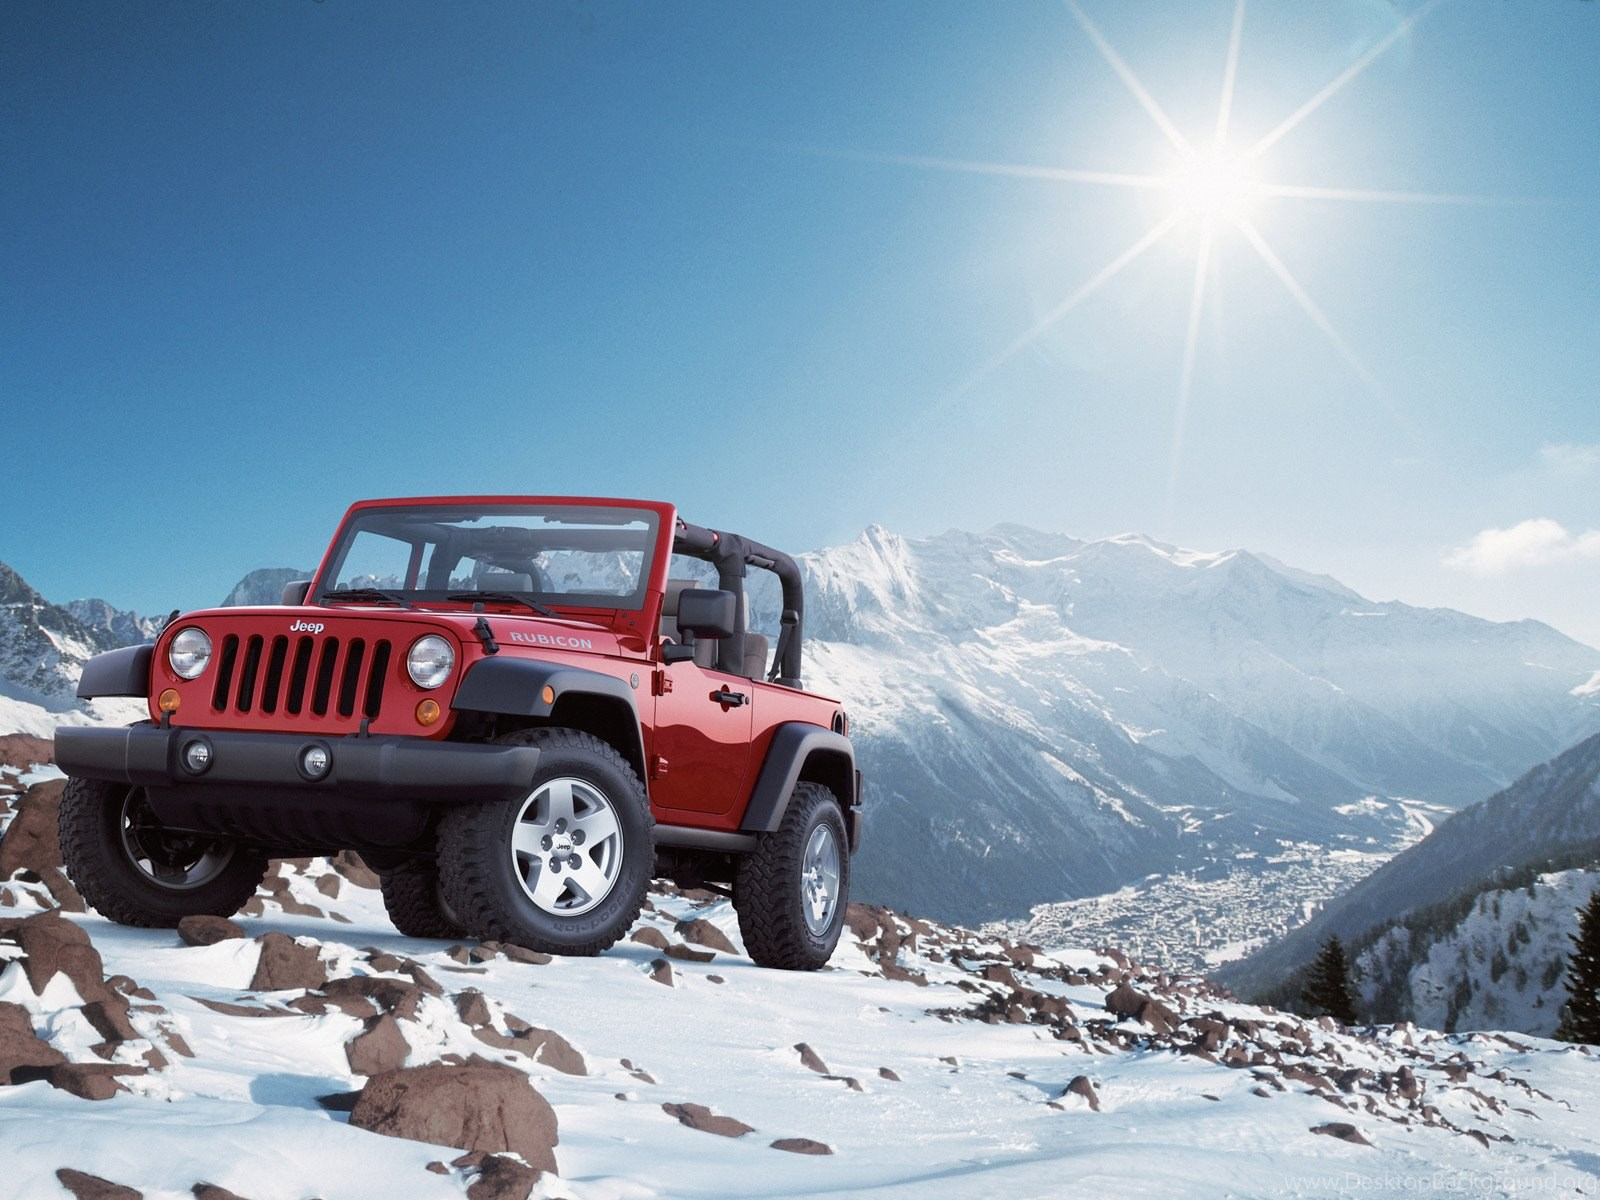 Wallpapers Women With Cars Backgrounds Cool Desktop Jeep Rubicon Desktop Background